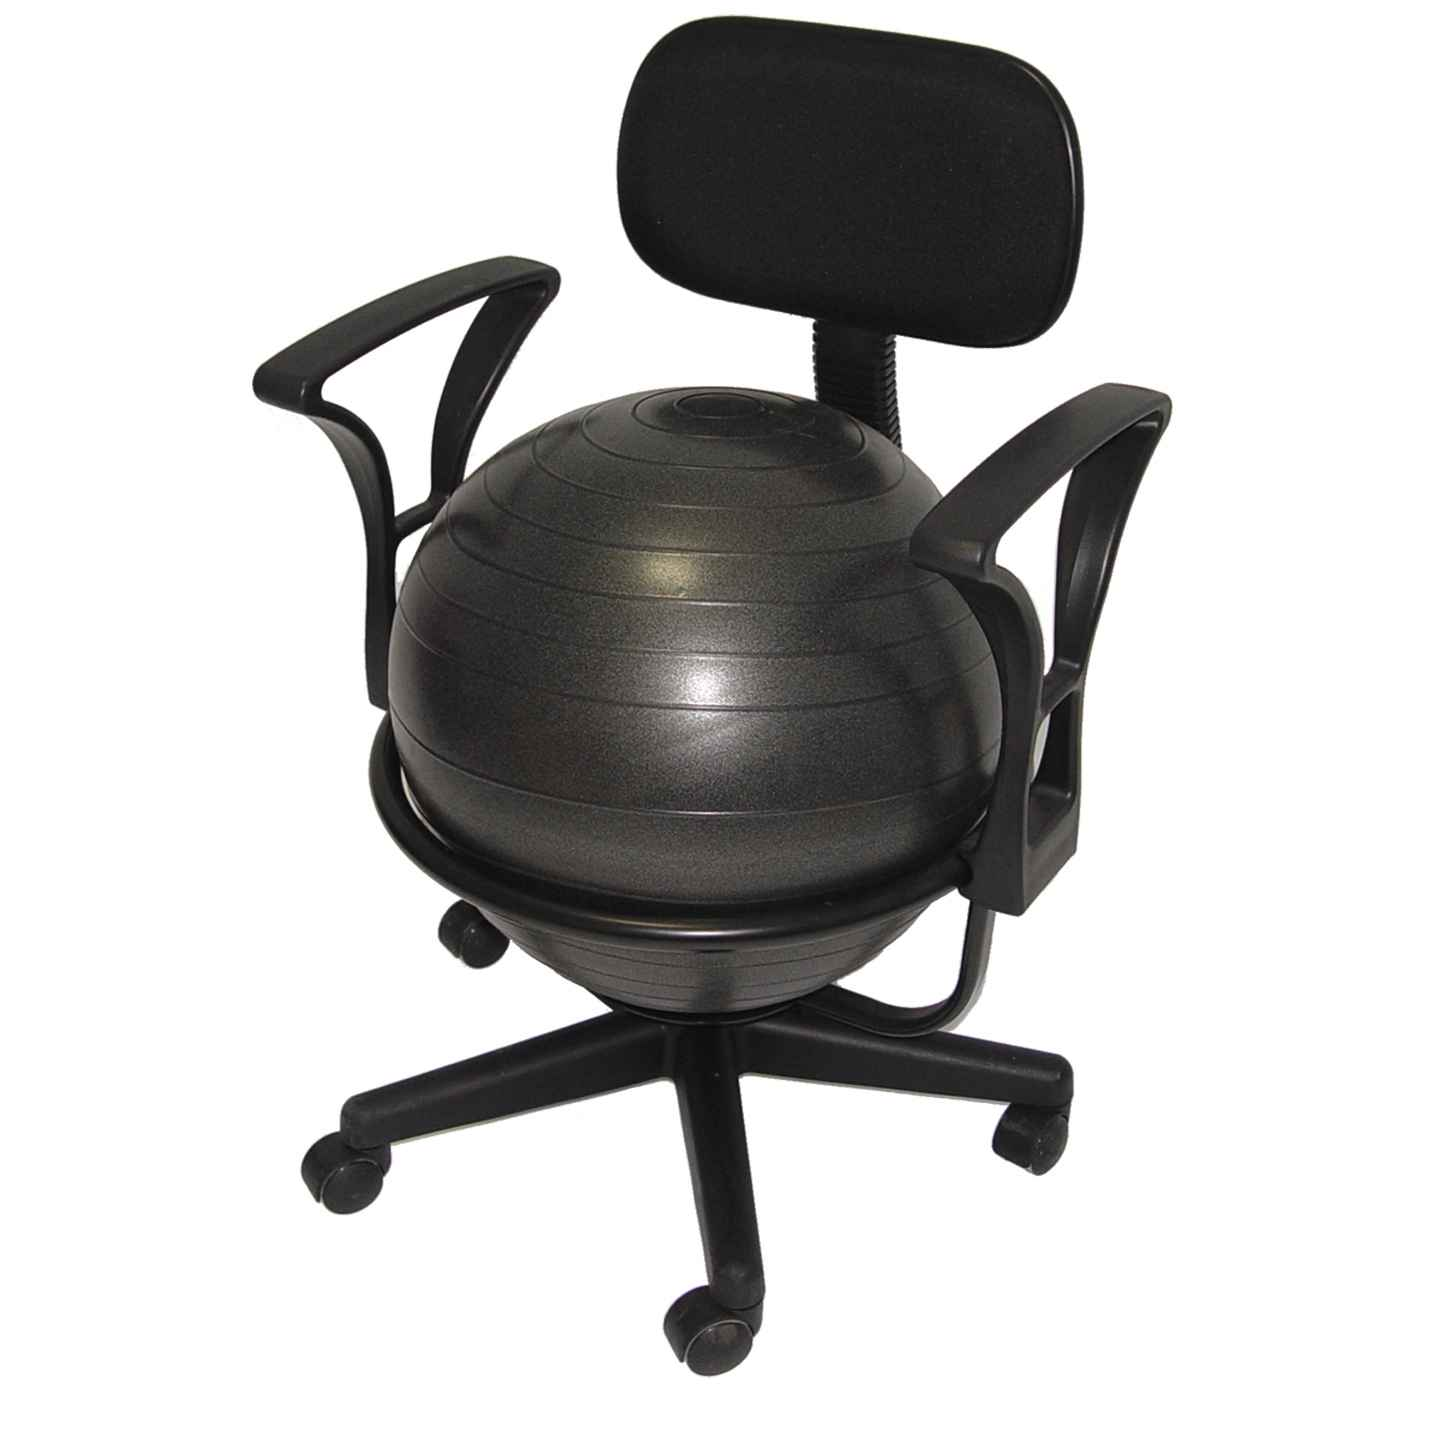 Aeromat black deluxe ergo ball chair